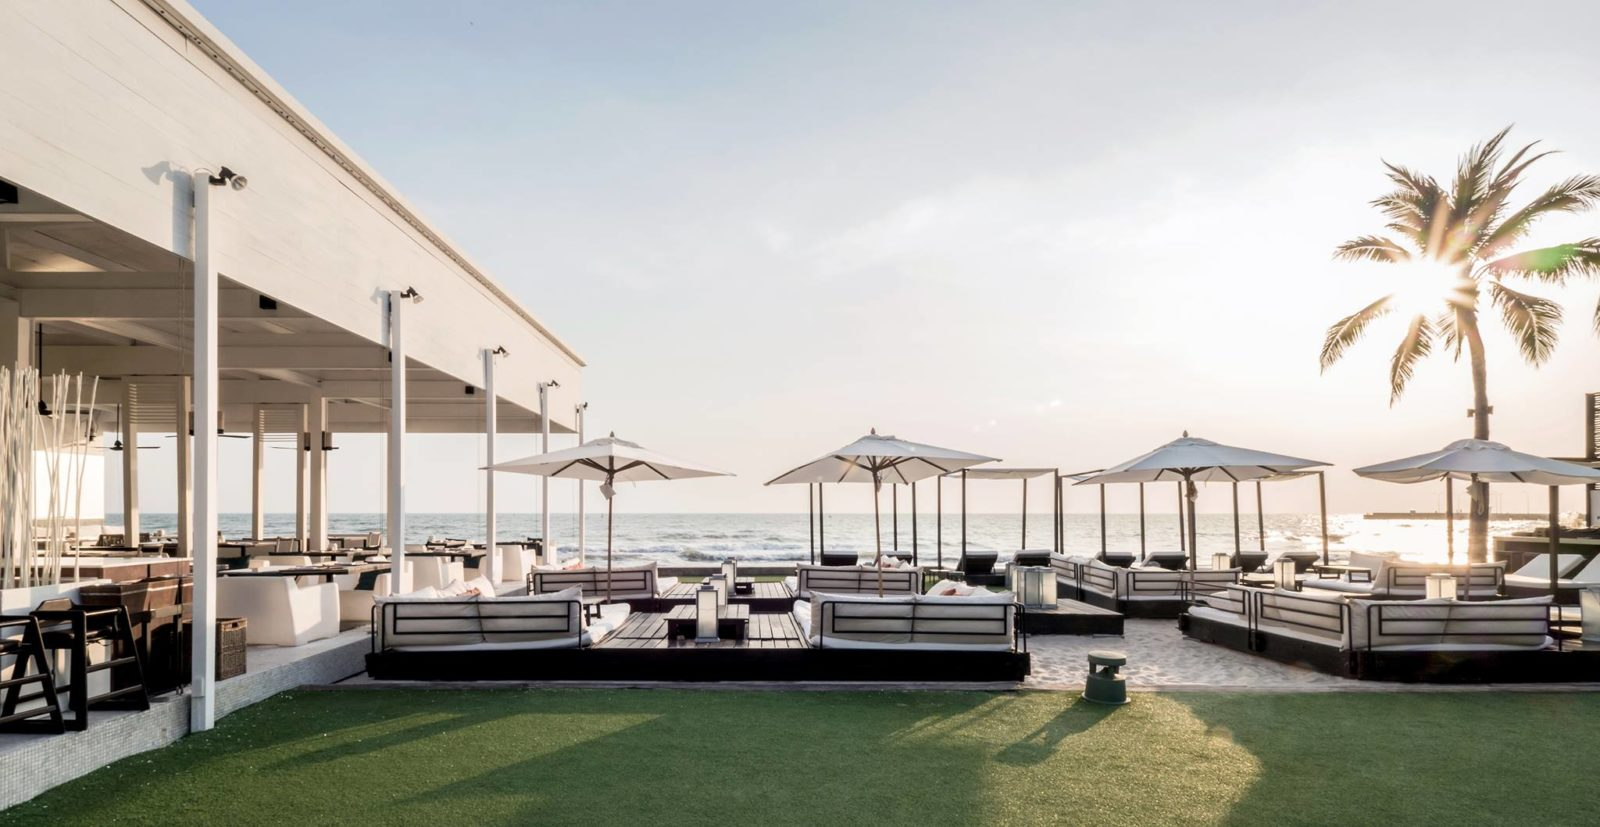 Good Life Getaways: 6 boutique hotels in Hua Hin for your next trip